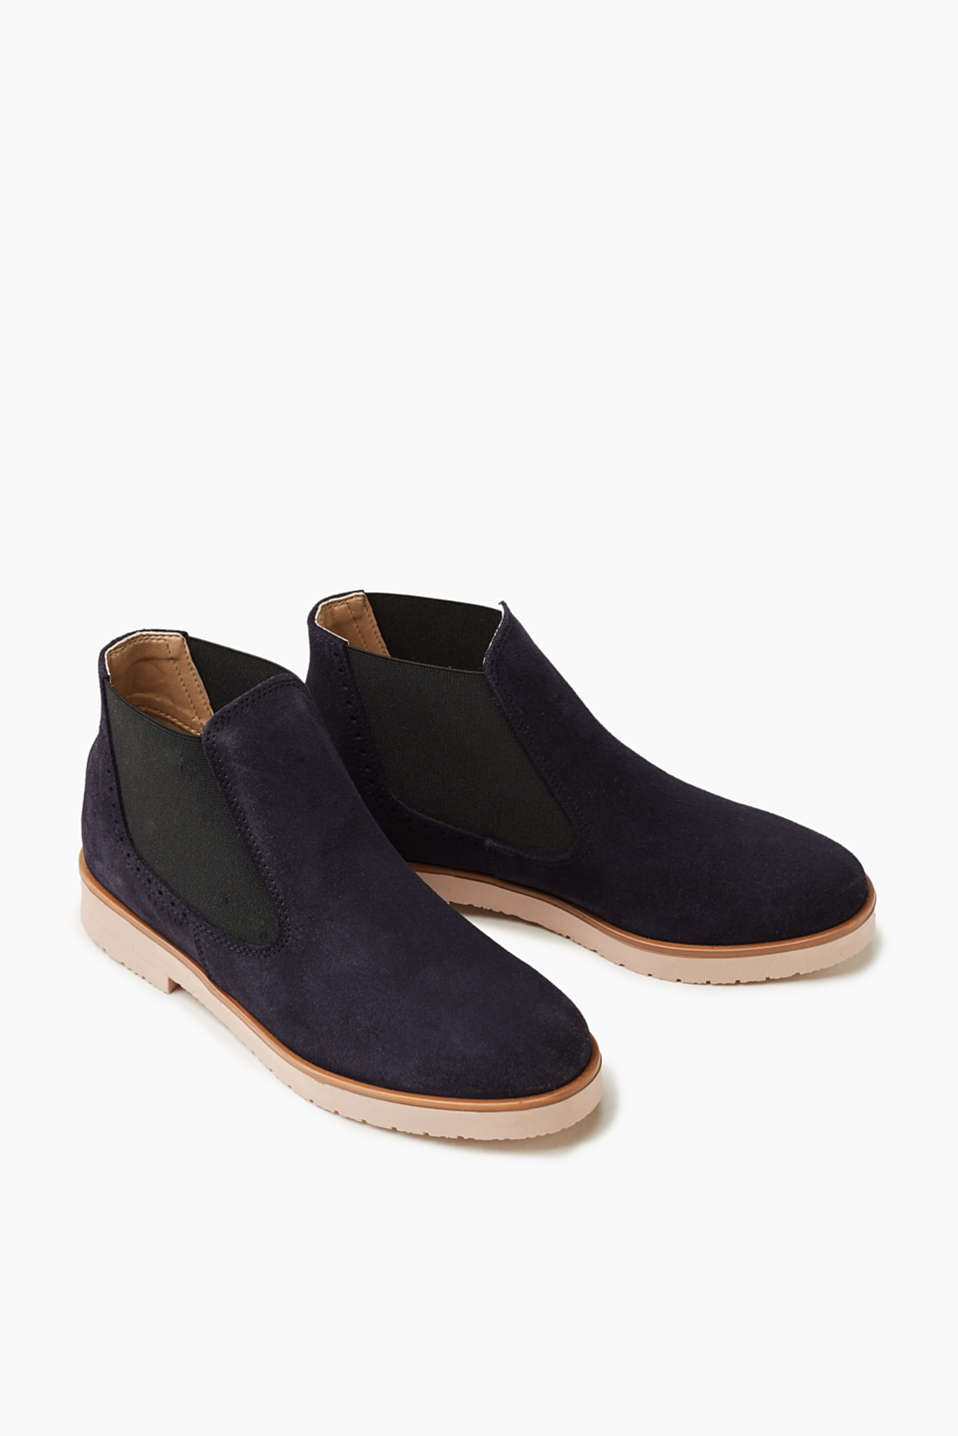 Chelseaboot aus softem Veloursleder